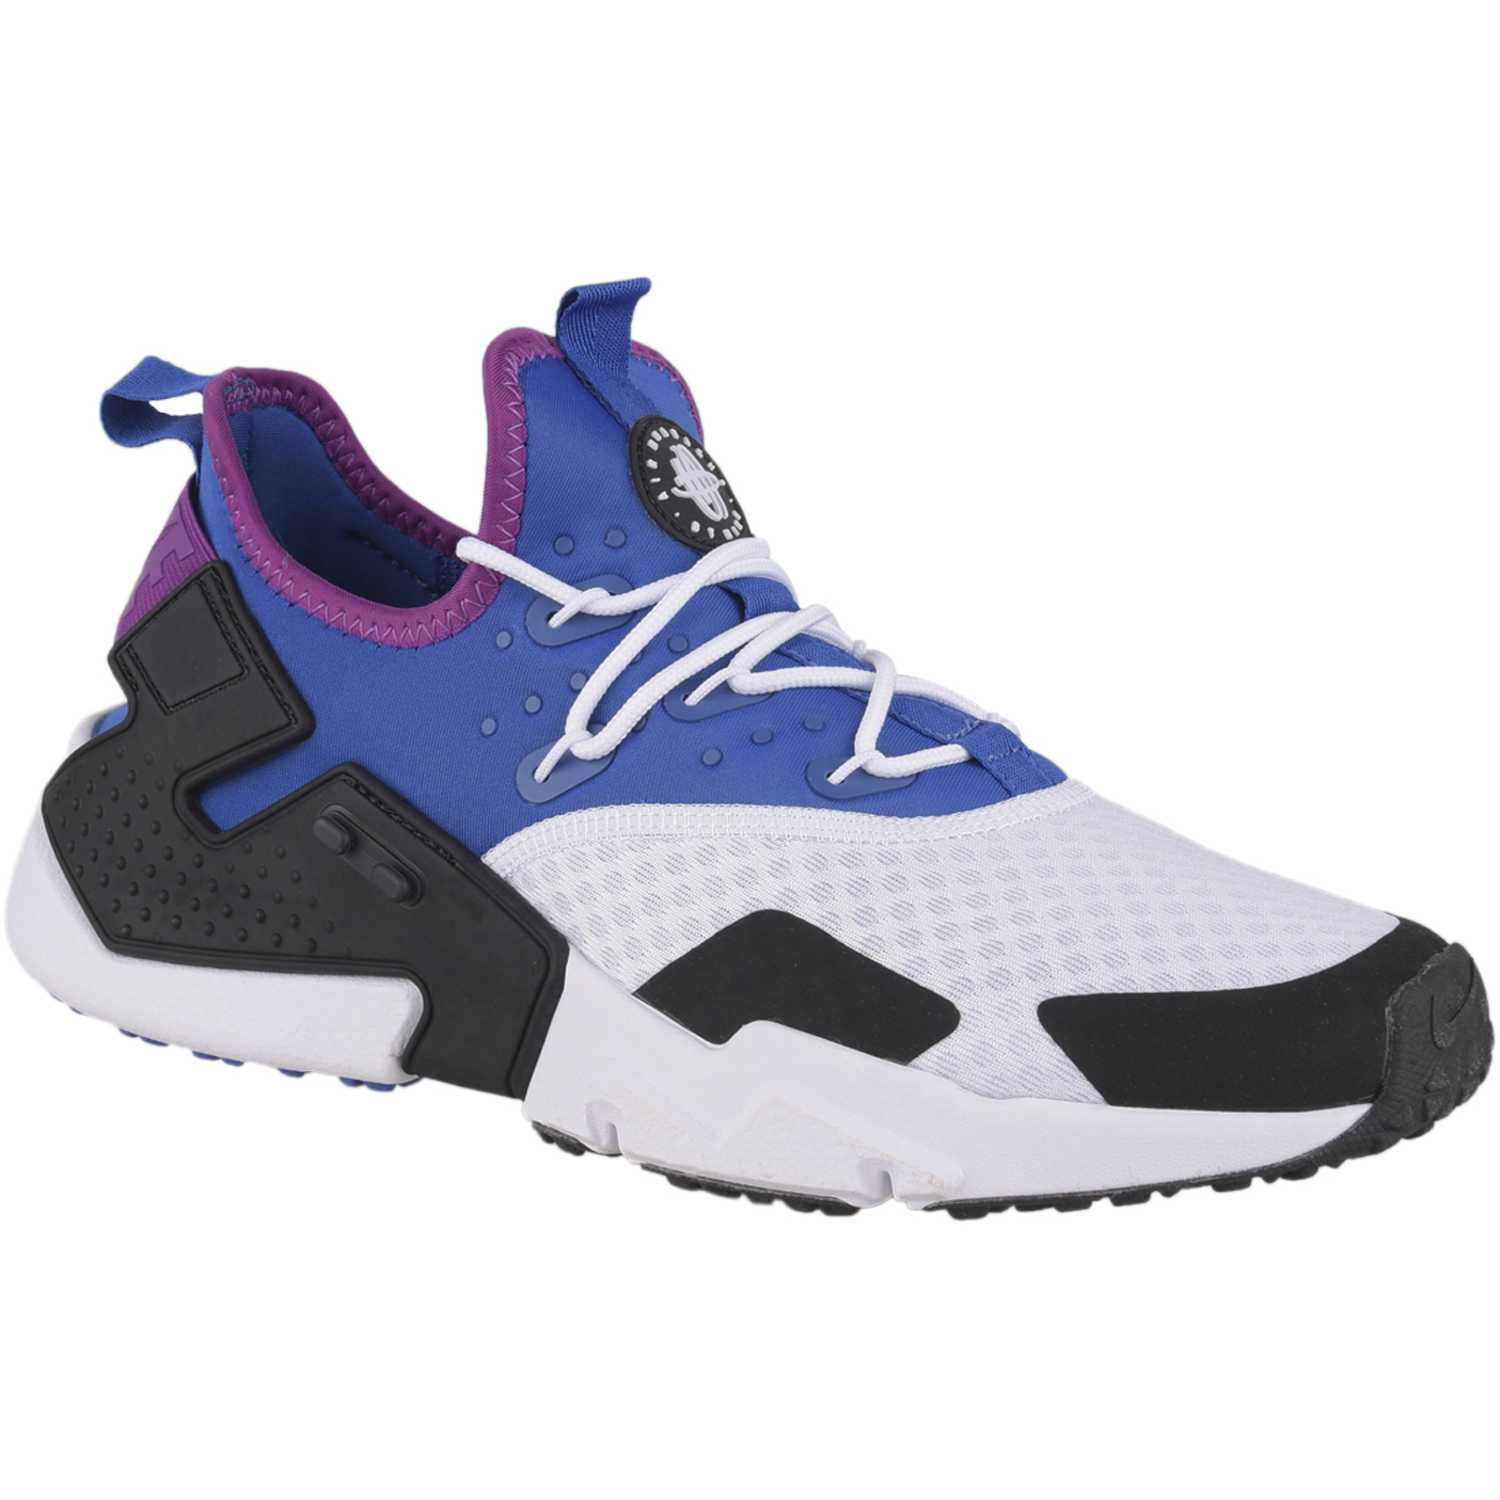 info for 79e5c 21648 Casual de Hombre Nike Blanco / azul nike air huarache drift ...